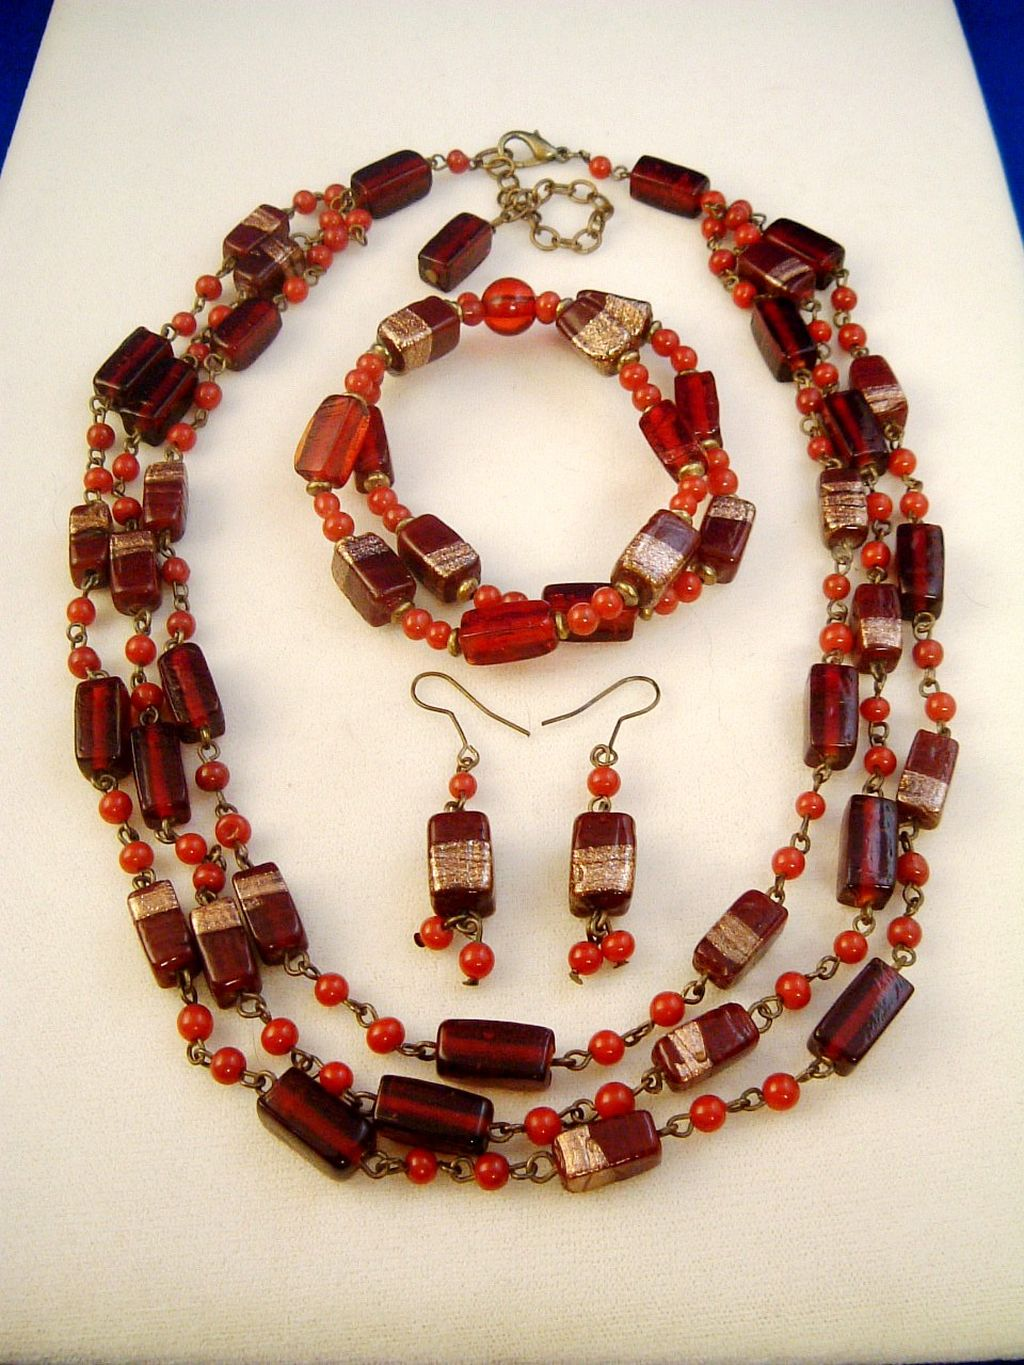 Copper Plated Maroon Stained Glass Beads, Set of Three Layers Necklace, Bracelet & Earrings, Anti-allergic Jewelry